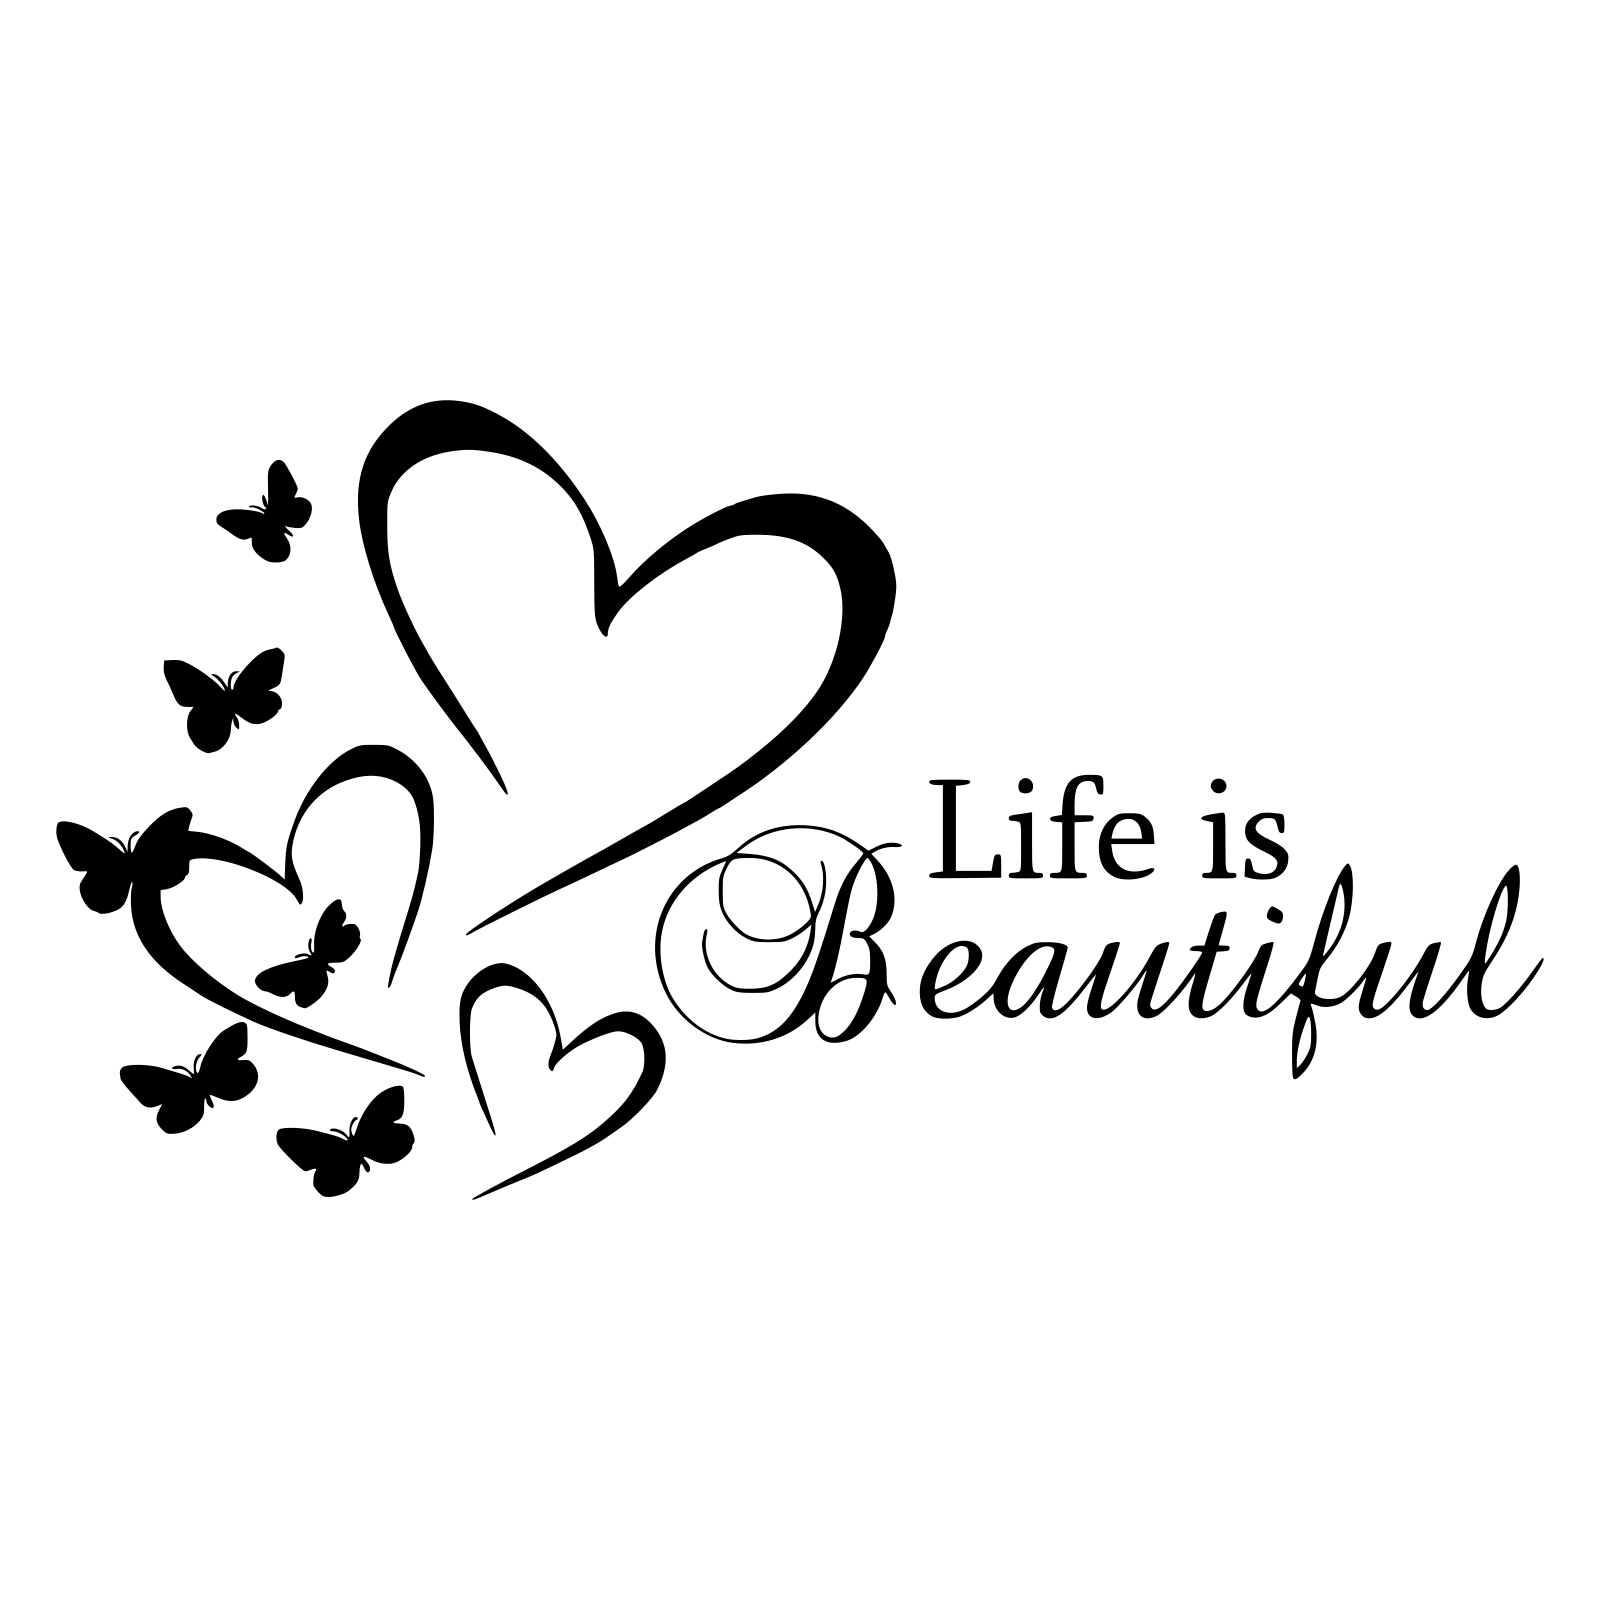 Home Decoration - Wall Art Stickers Life is Beautiful Removable Home Decor Decals, DIY quotes D